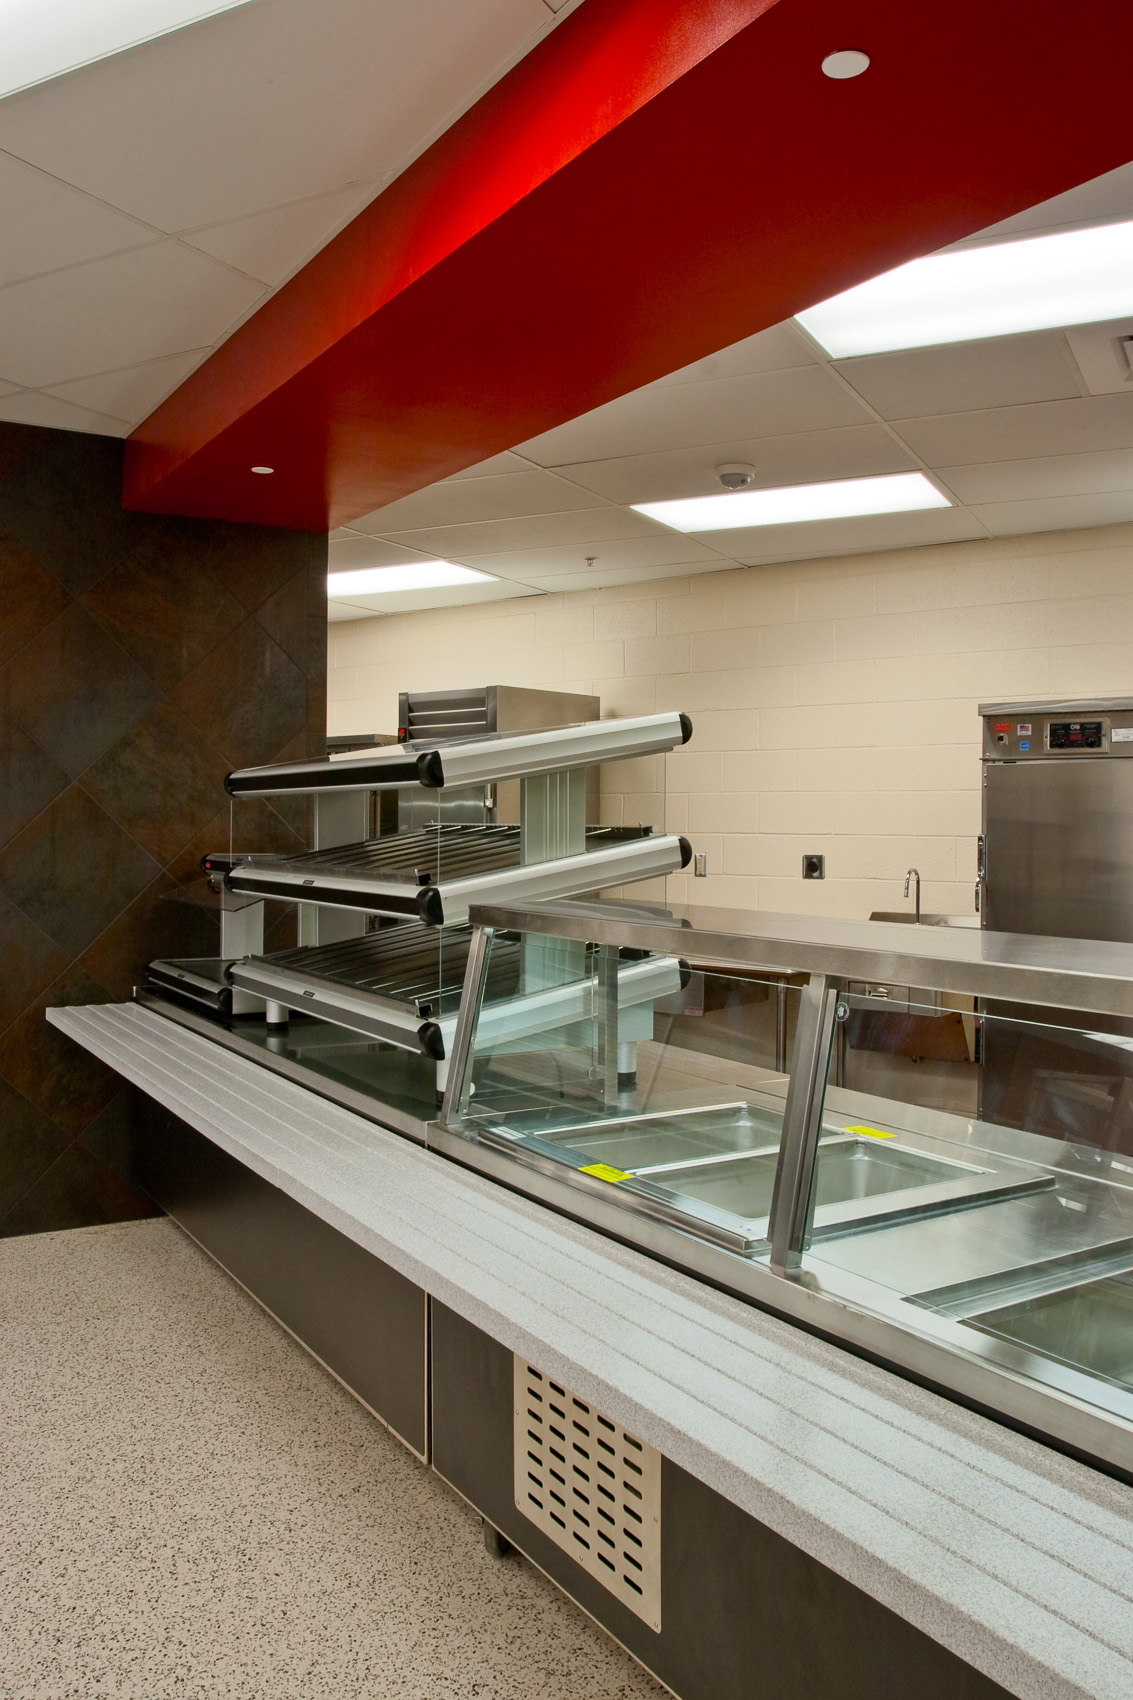 Custom Designed Cafeteria at Warwick High School iin Lititz, PA for Clark Foodservice Inc. | J. Eldon Zimmerman Photography | Lancaster, PA Architecture Photographer